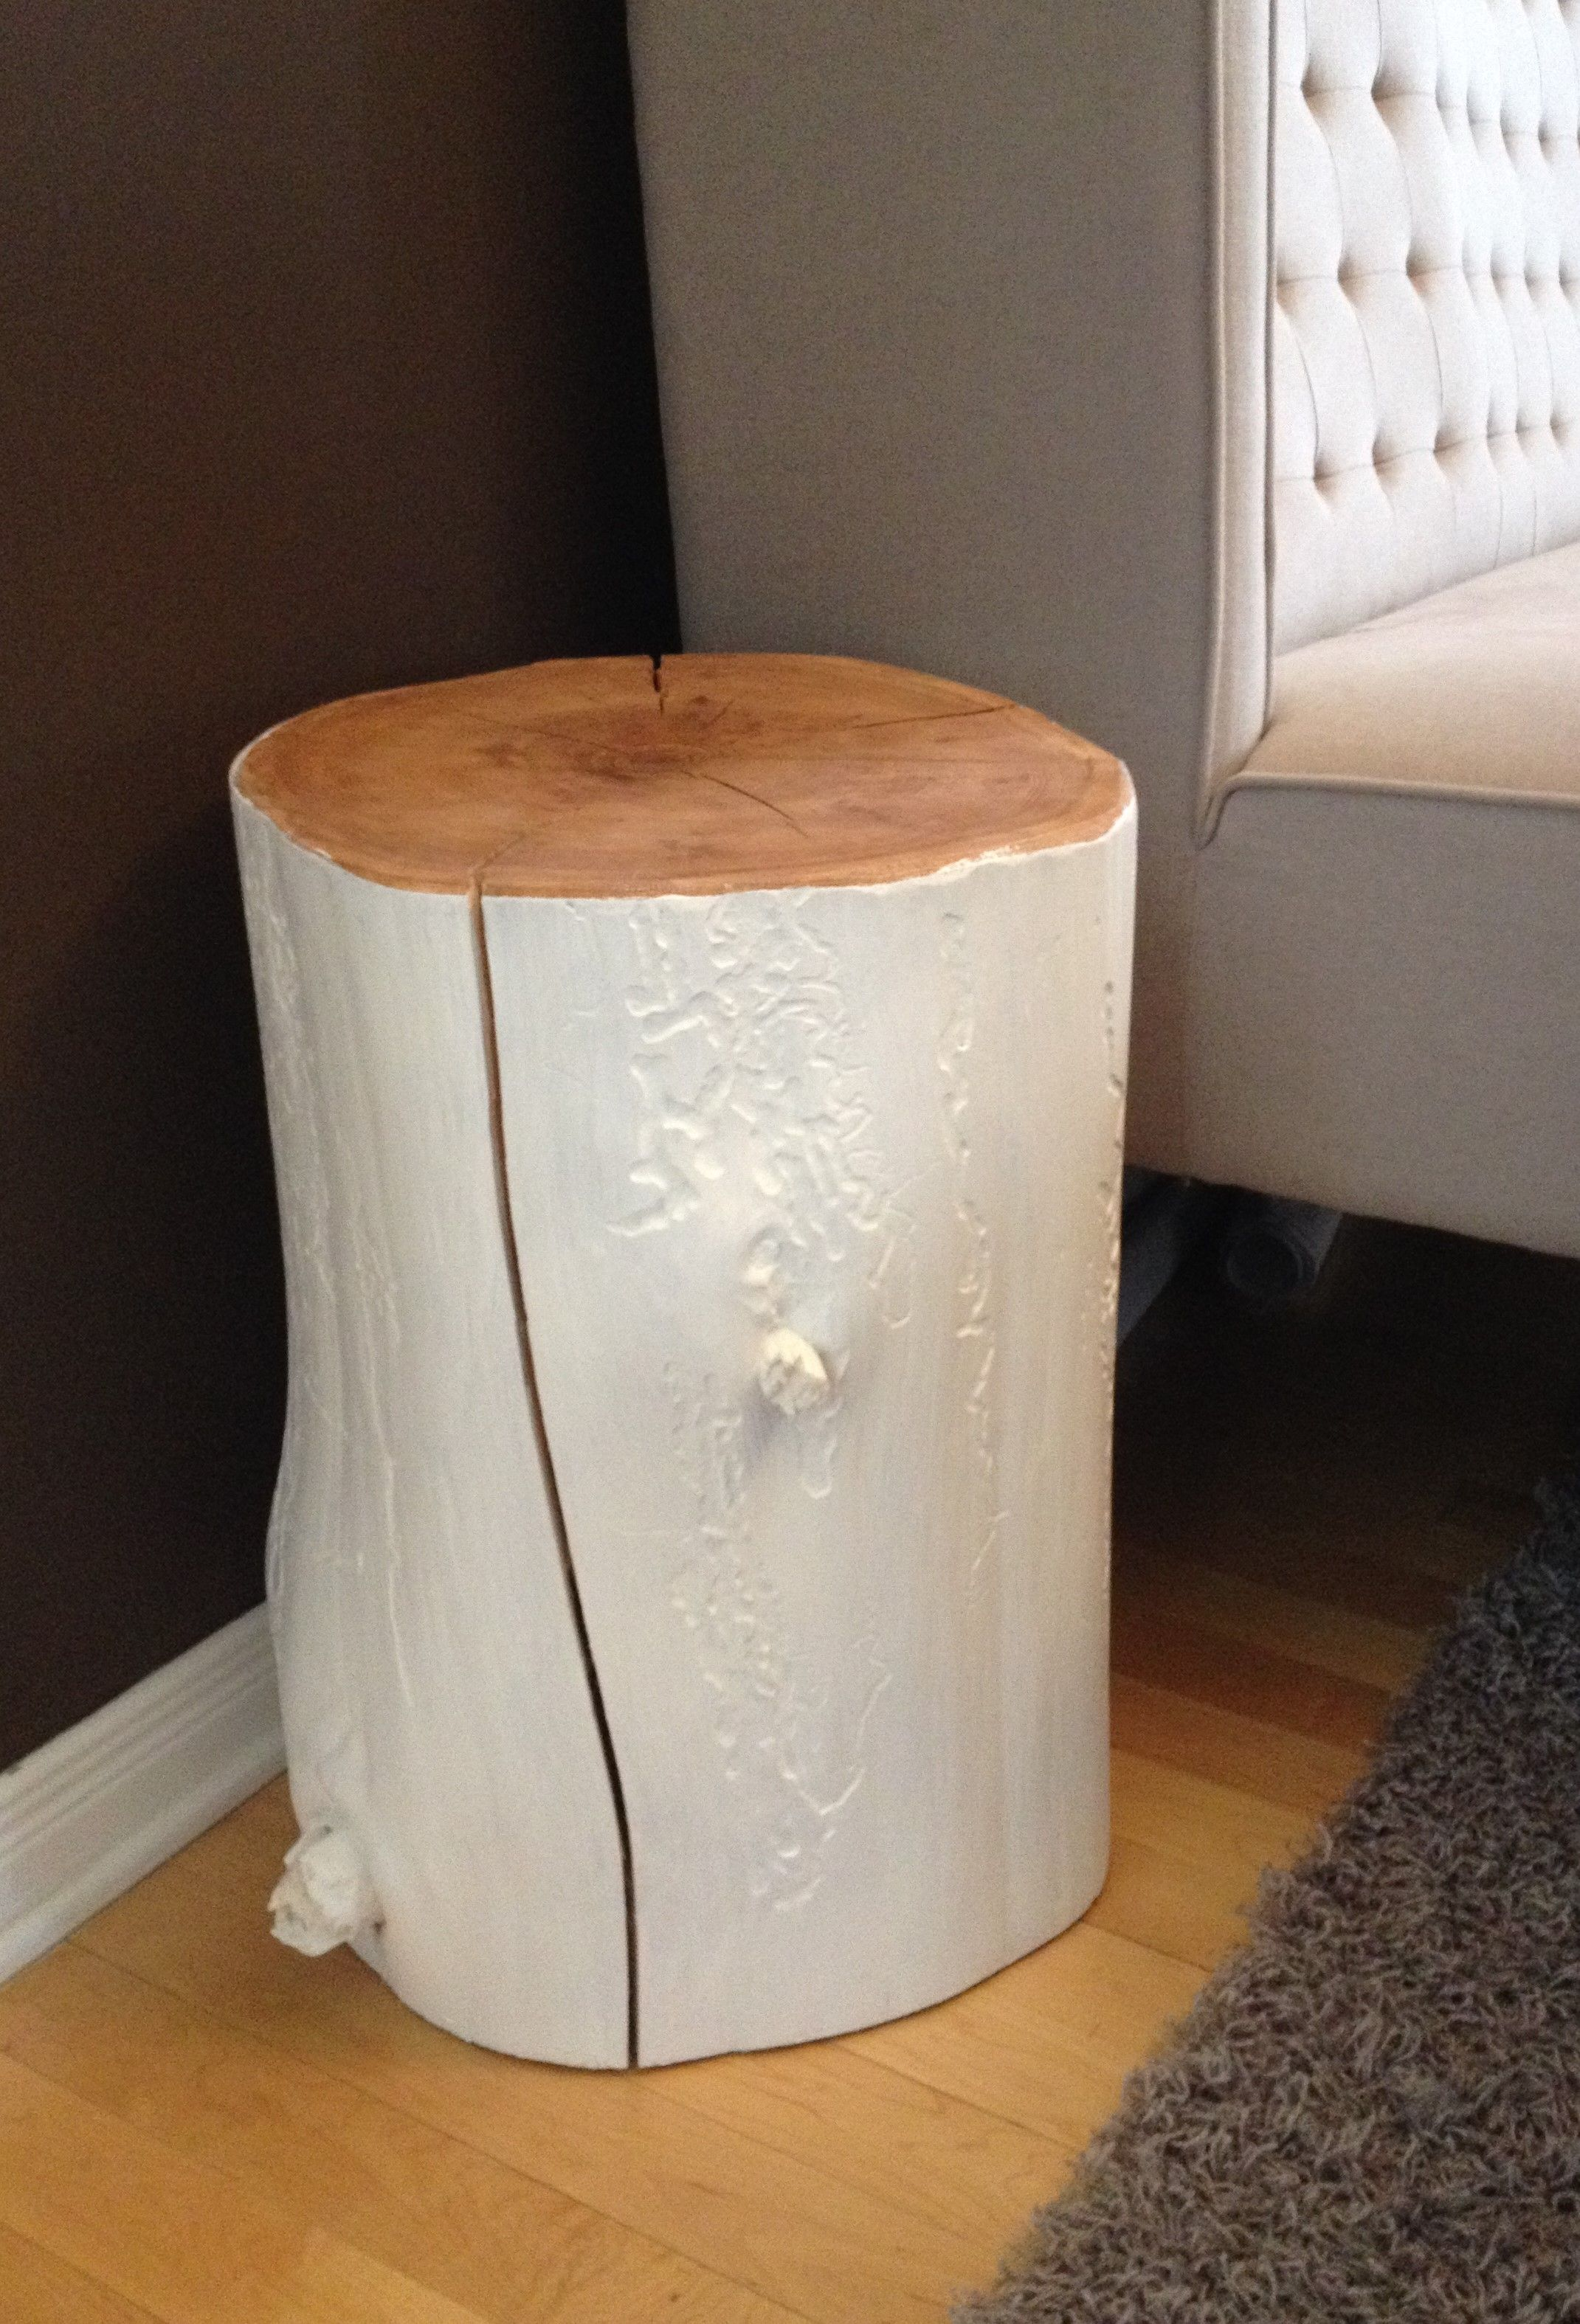 stump side table painted white log tables wood accent rustic tree trunk furniture end coffee root cherry set touch lamps modern decor ideas ikea outdoor chairs cream colored